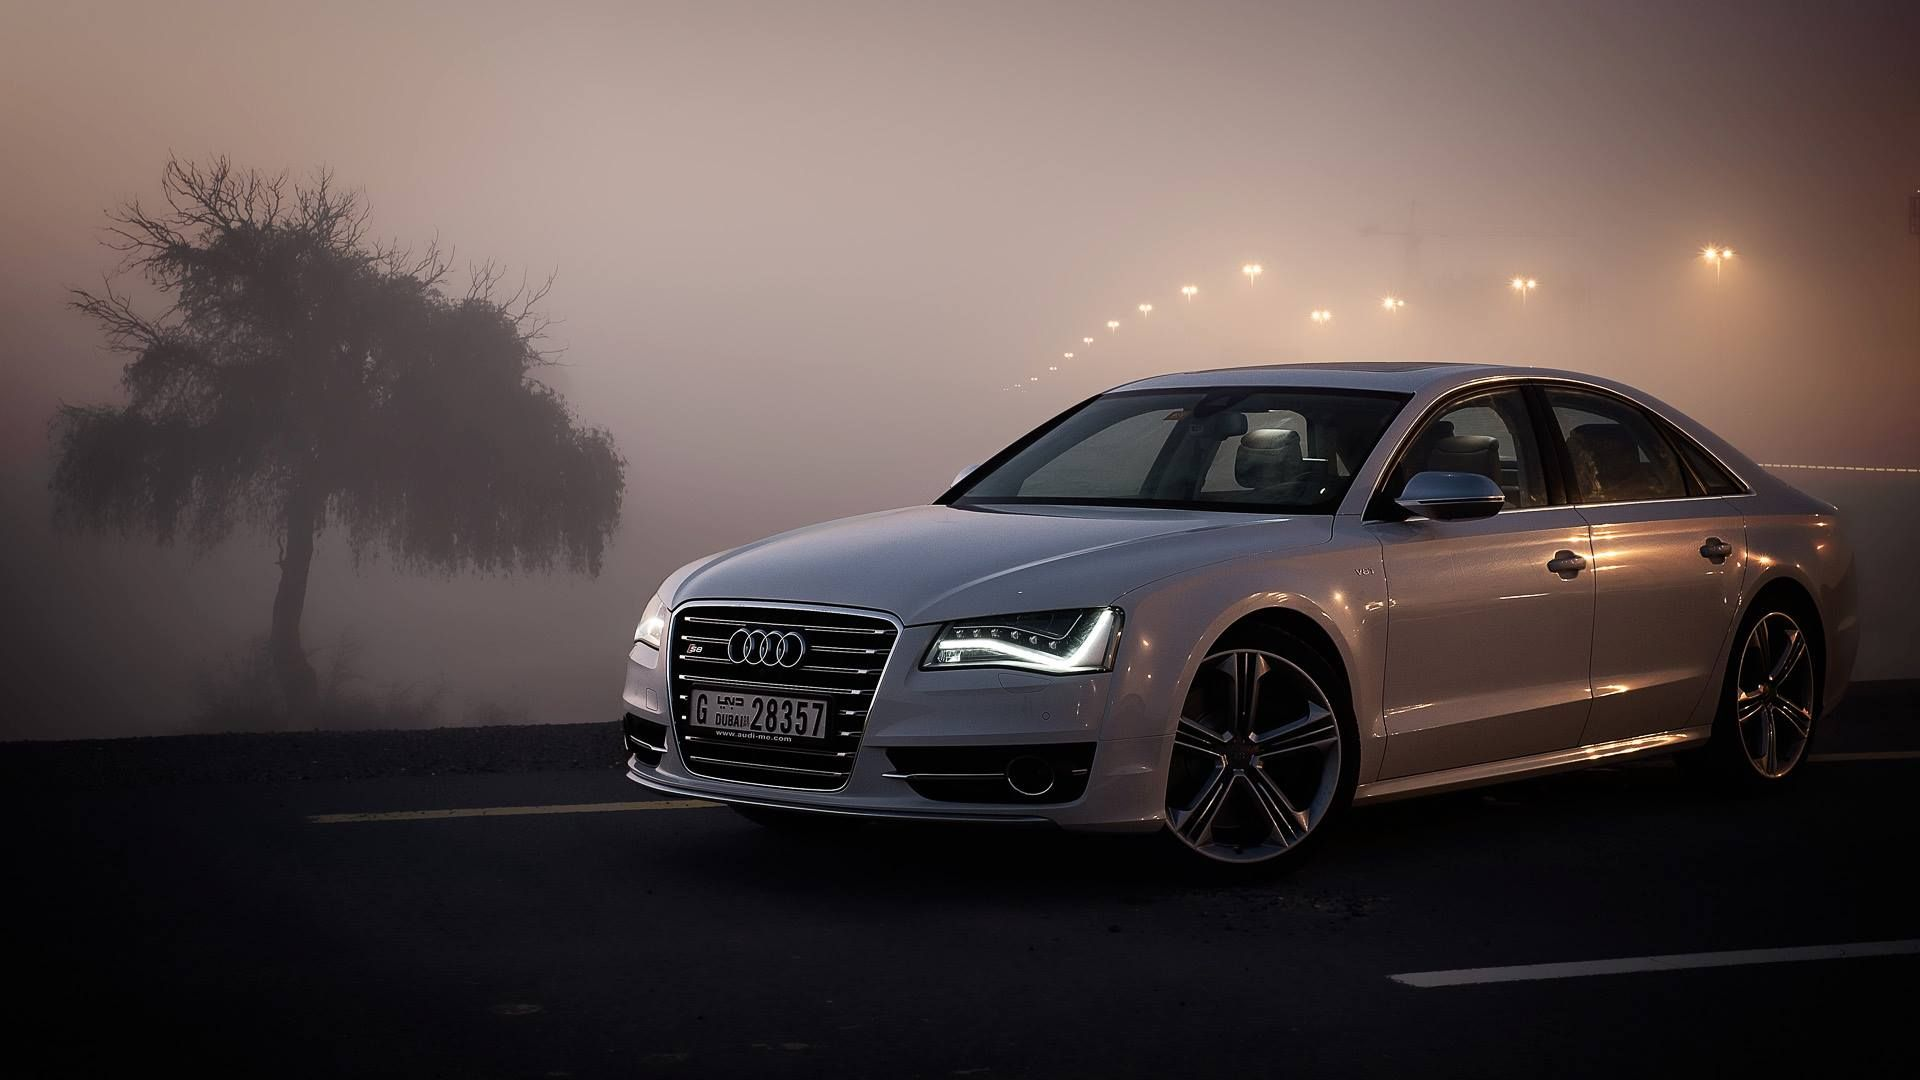 The Beauty Of The Audi S8 Still Shines Through C Pic By Audi Russia Audi Volkswagen Polo Audi Usa